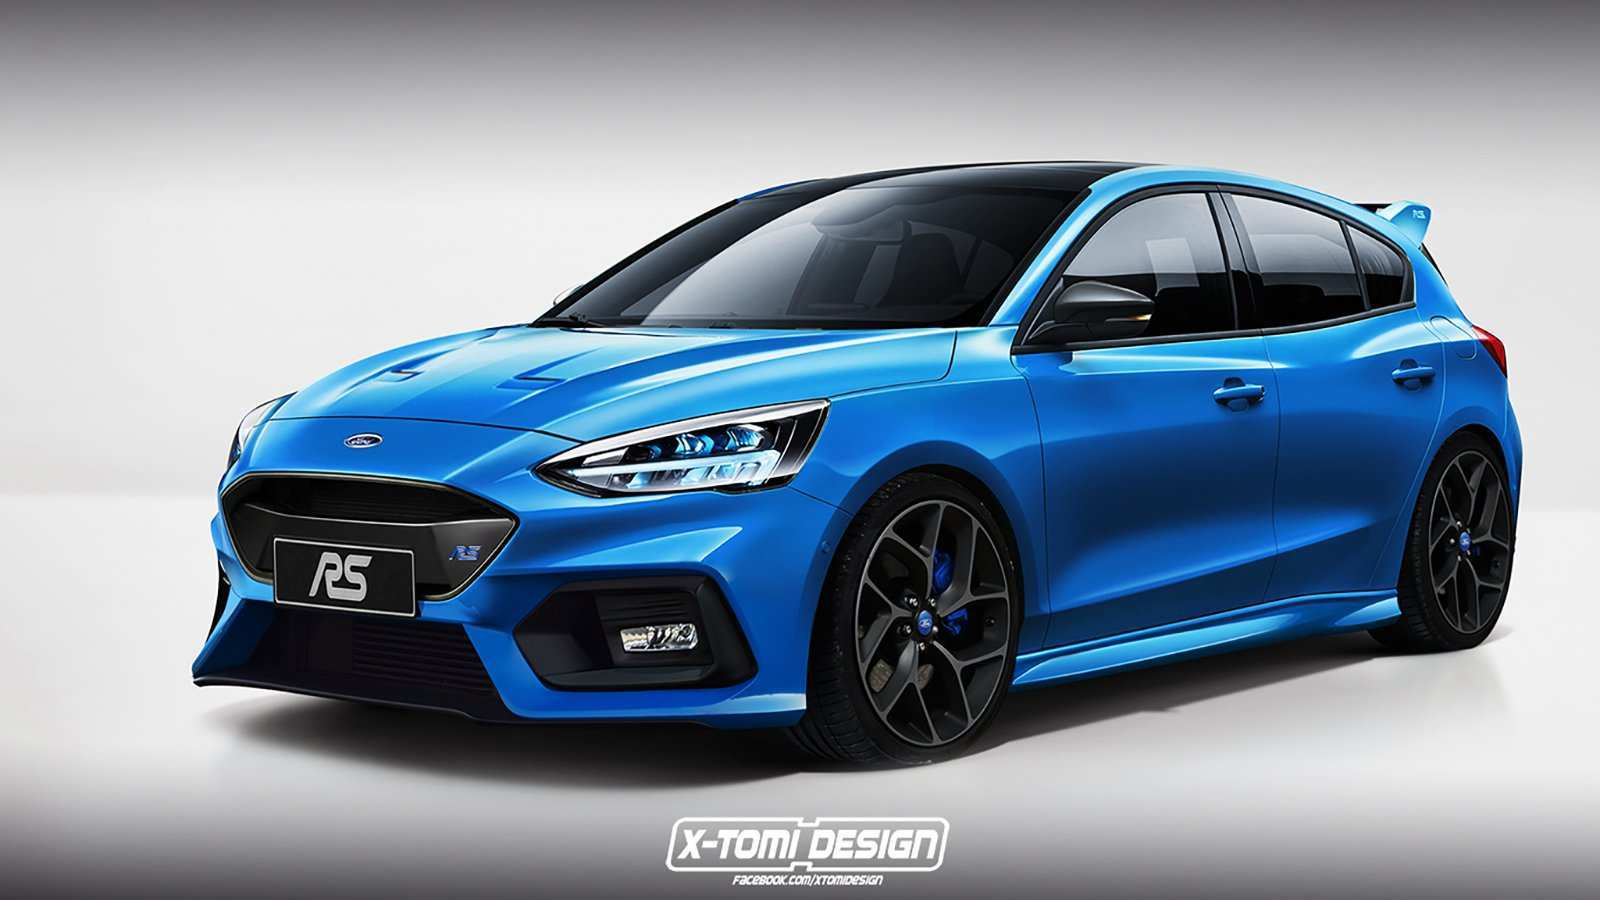 99 New 2019 Ford Focus Concept